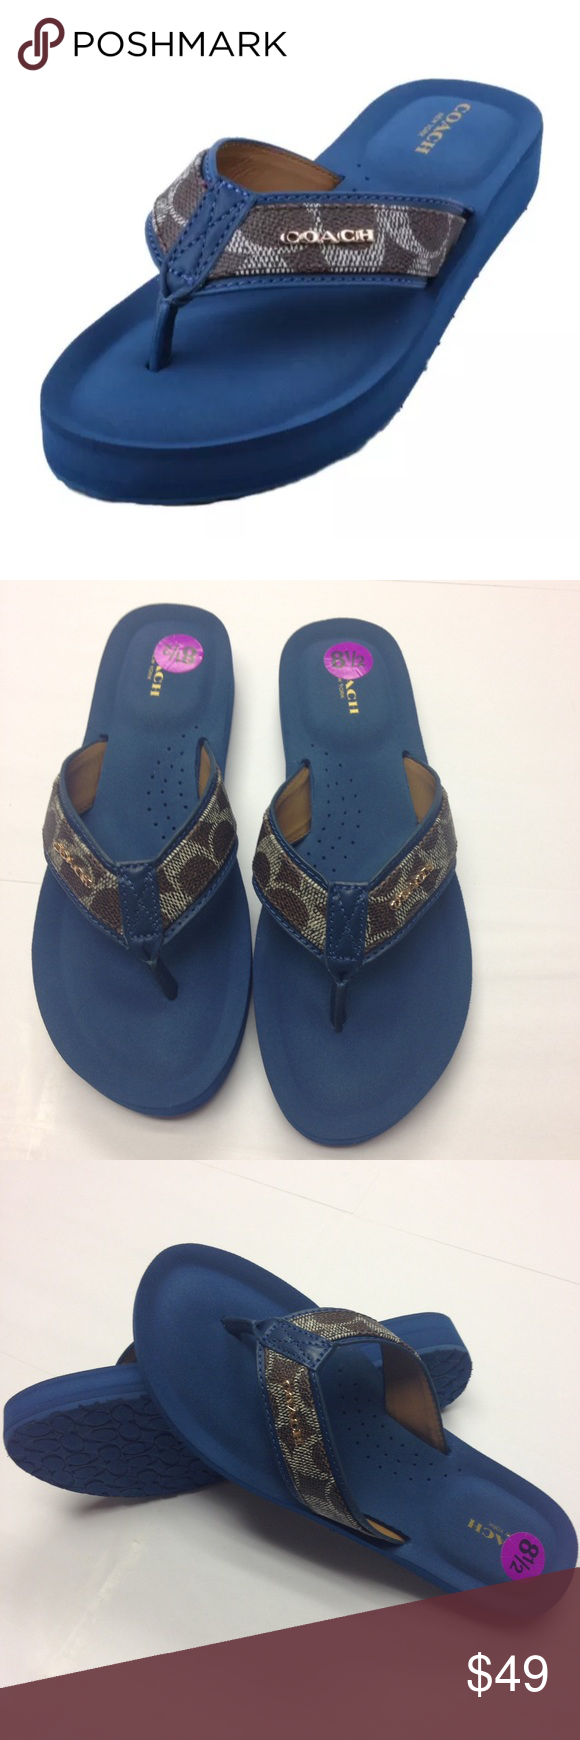 fc29291169f9 Authentic Coach Judy Flip Flops Sandals 100% Authentic New Without Box Coach  Judy Brown